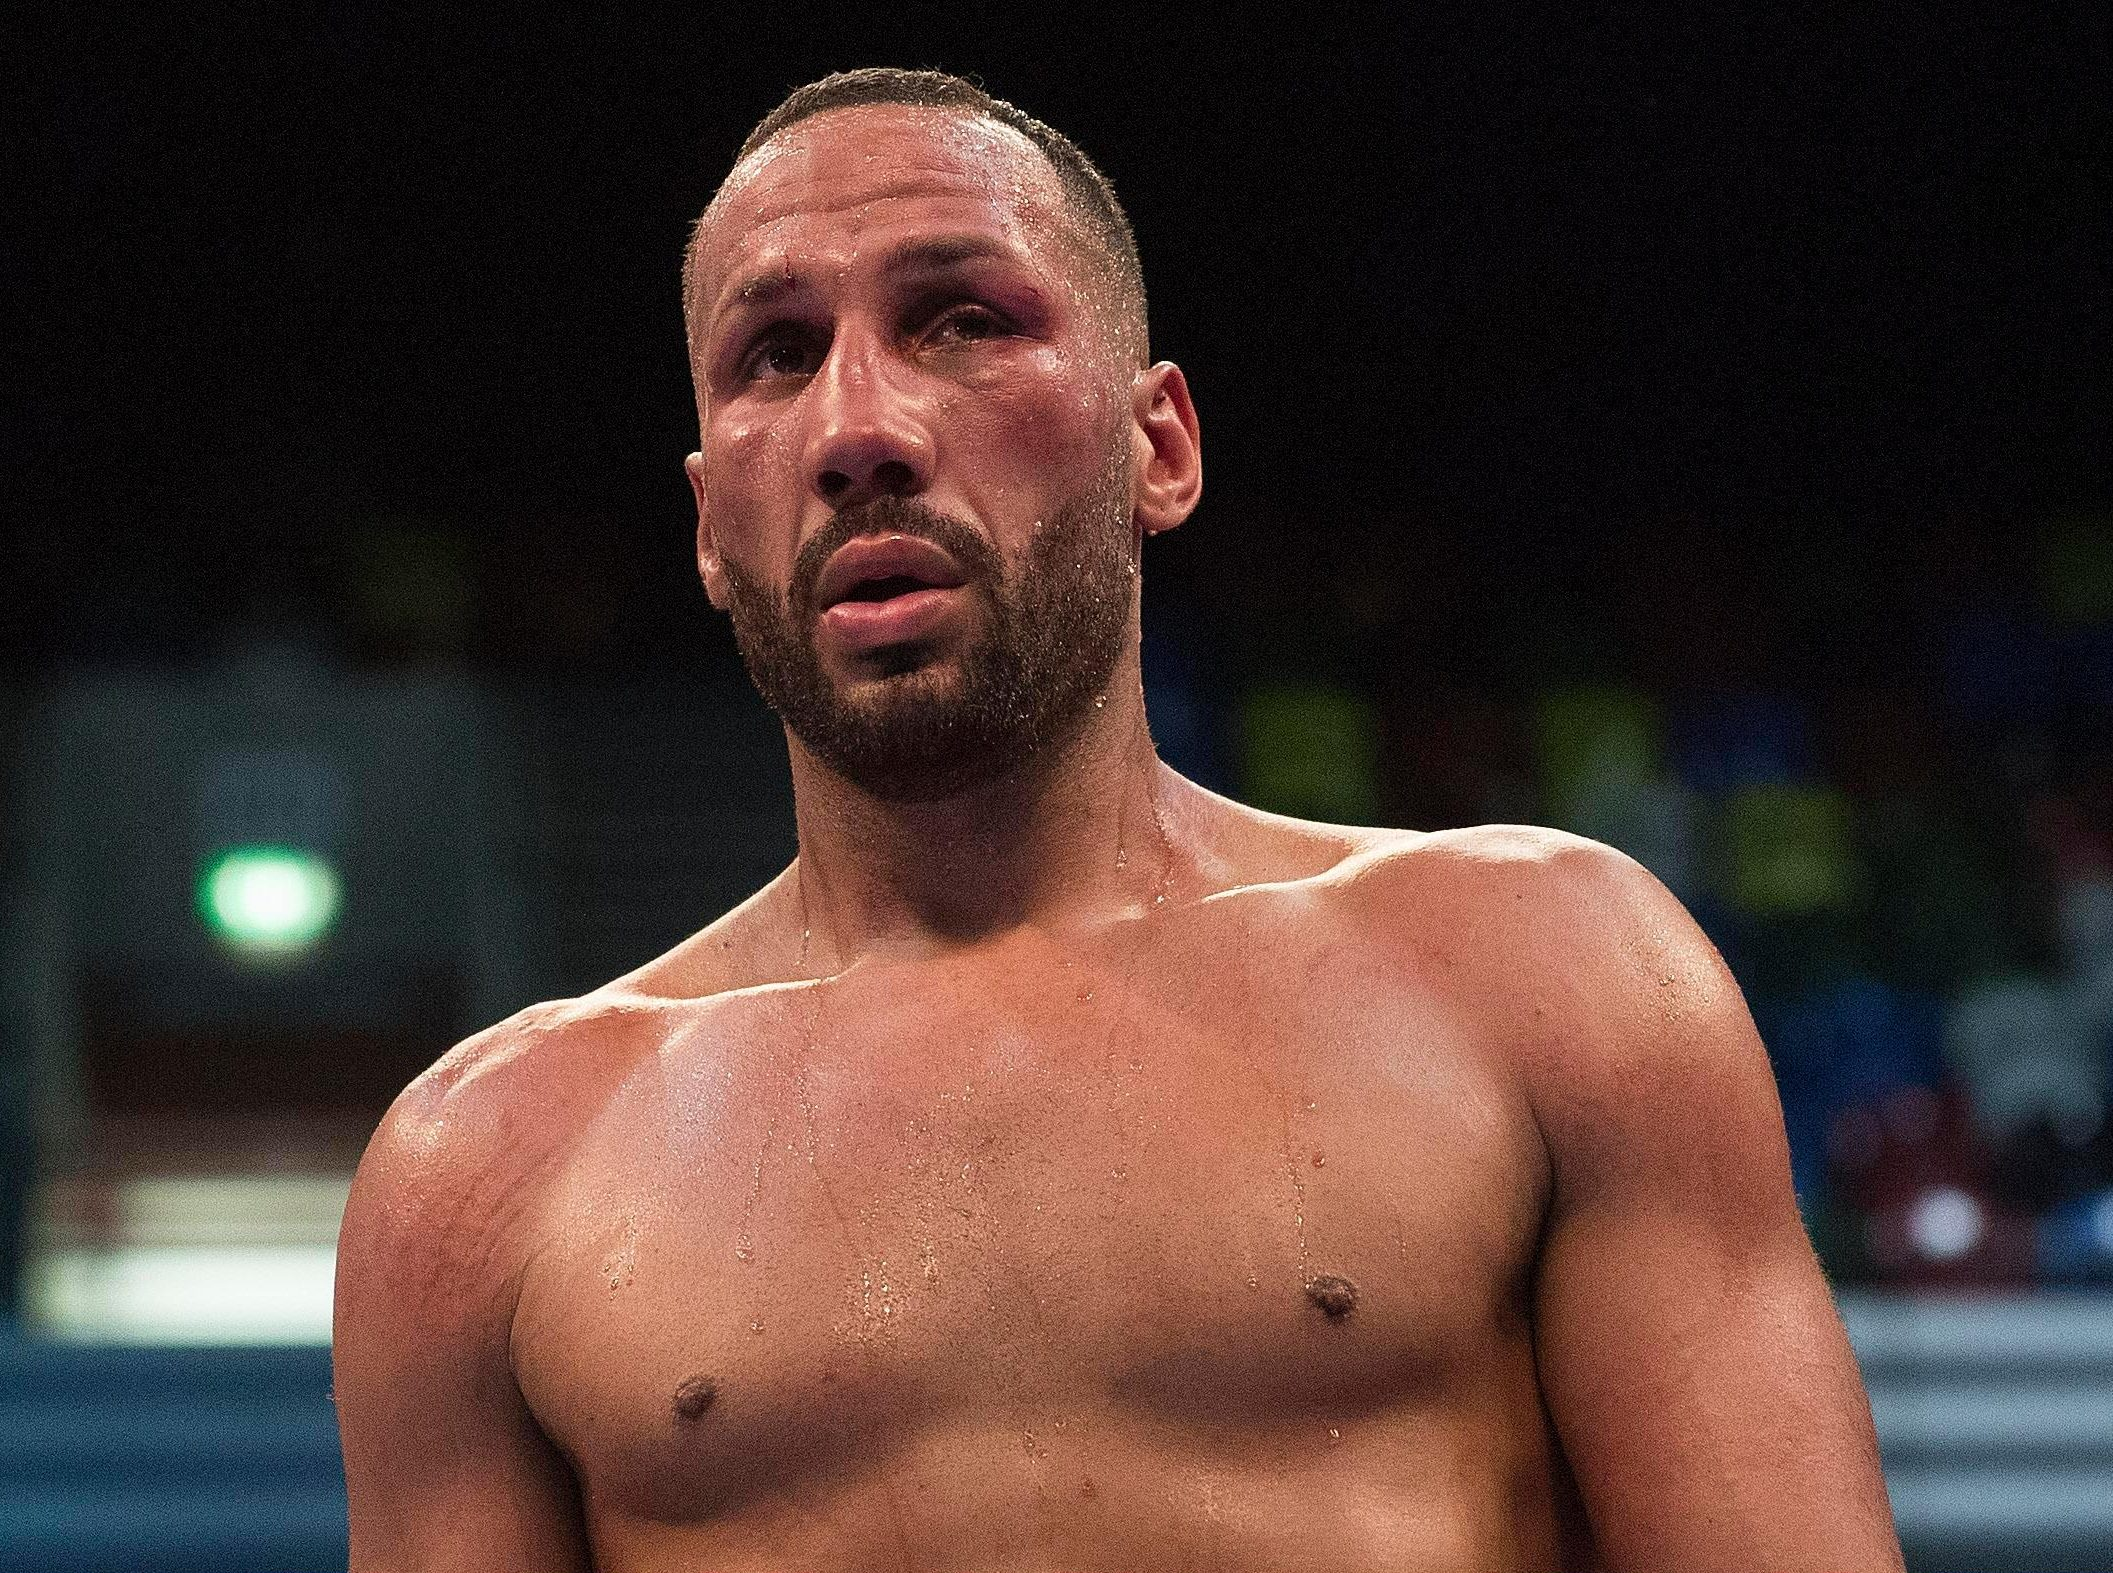 DeGale lost his IBF title against Caleb Truax in December 2017 but later avenged the loss in April of this year